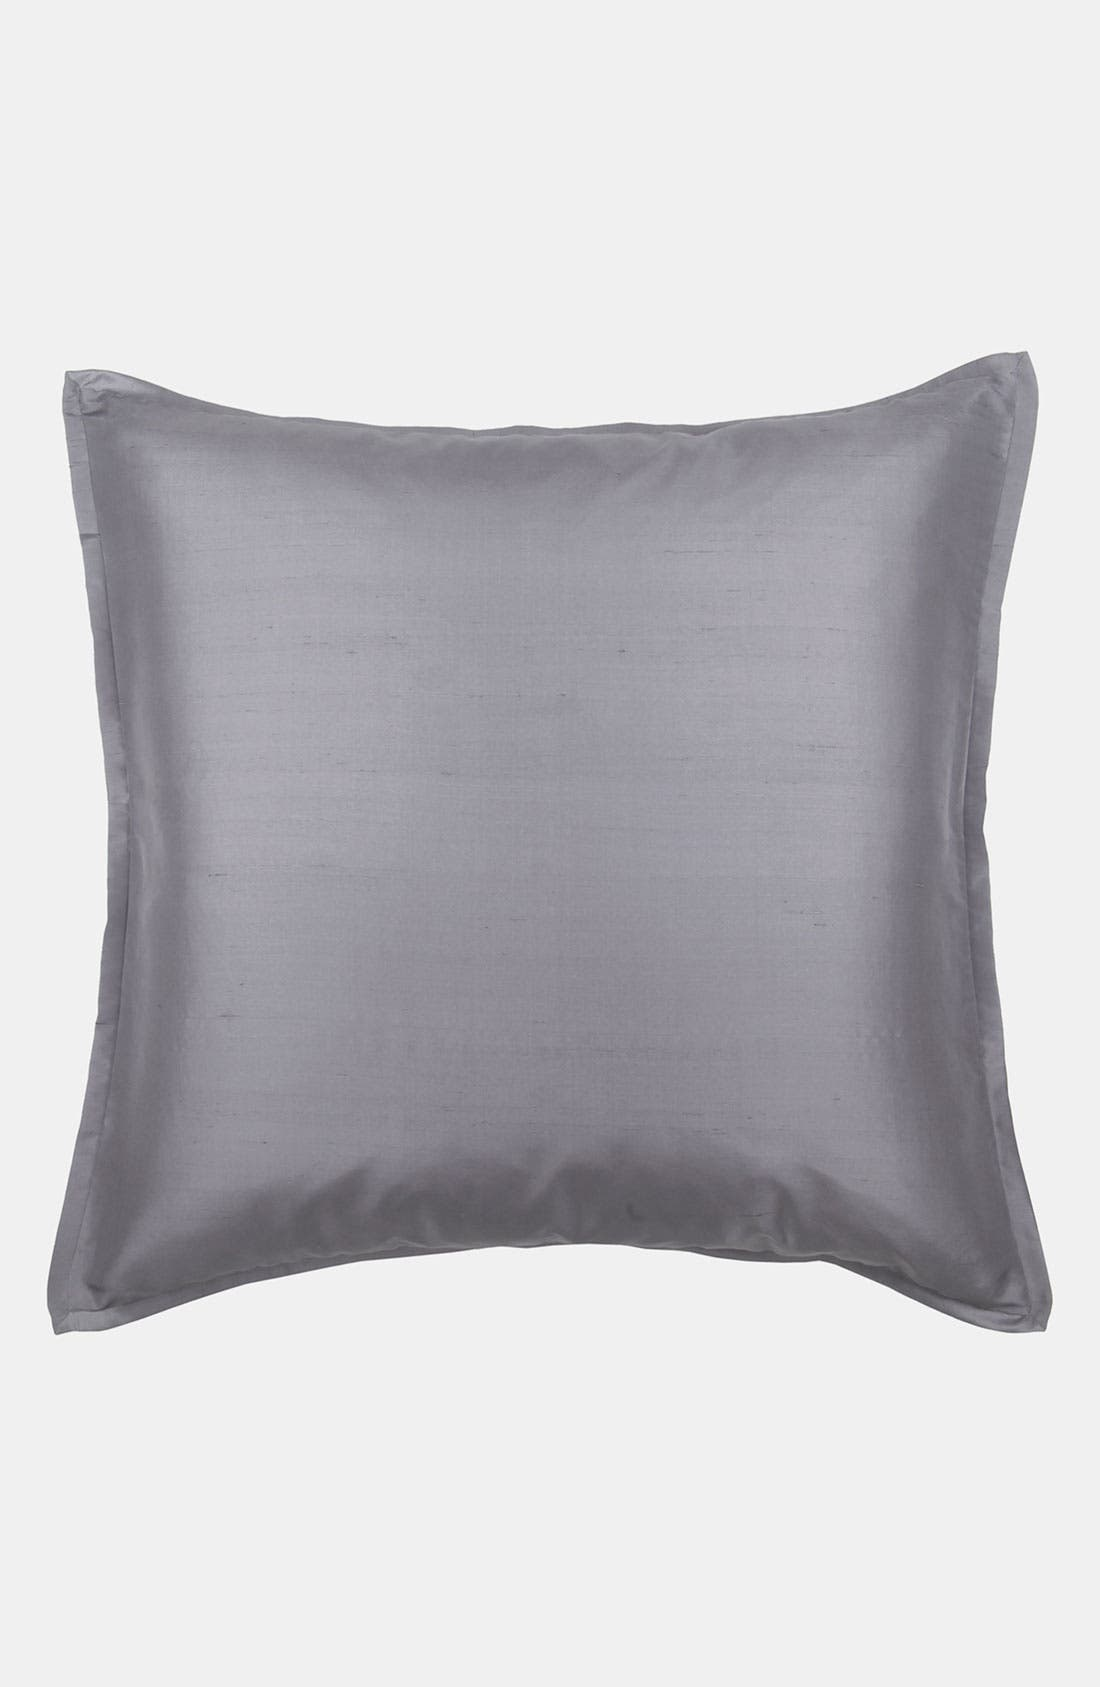 Main Image - Blissliving Home 'Lucca Graphite' Euro Pillow (Online Only)